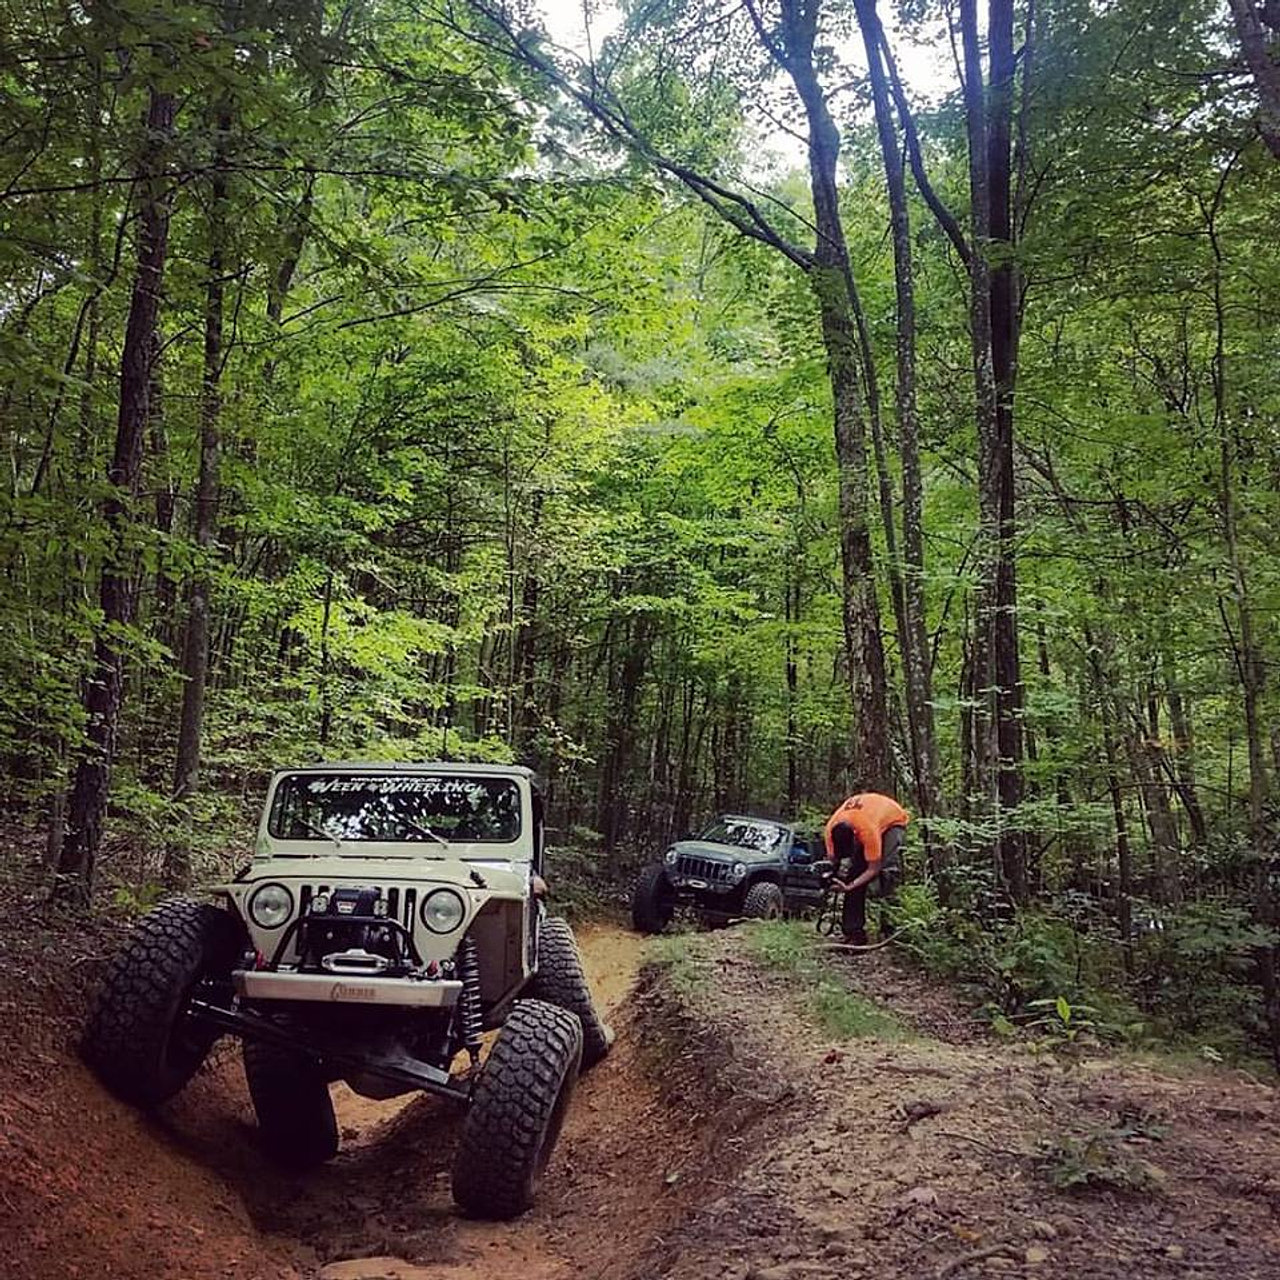 Moab Offroad Jeep,Truck, 4wd Parts, Service, And Repair